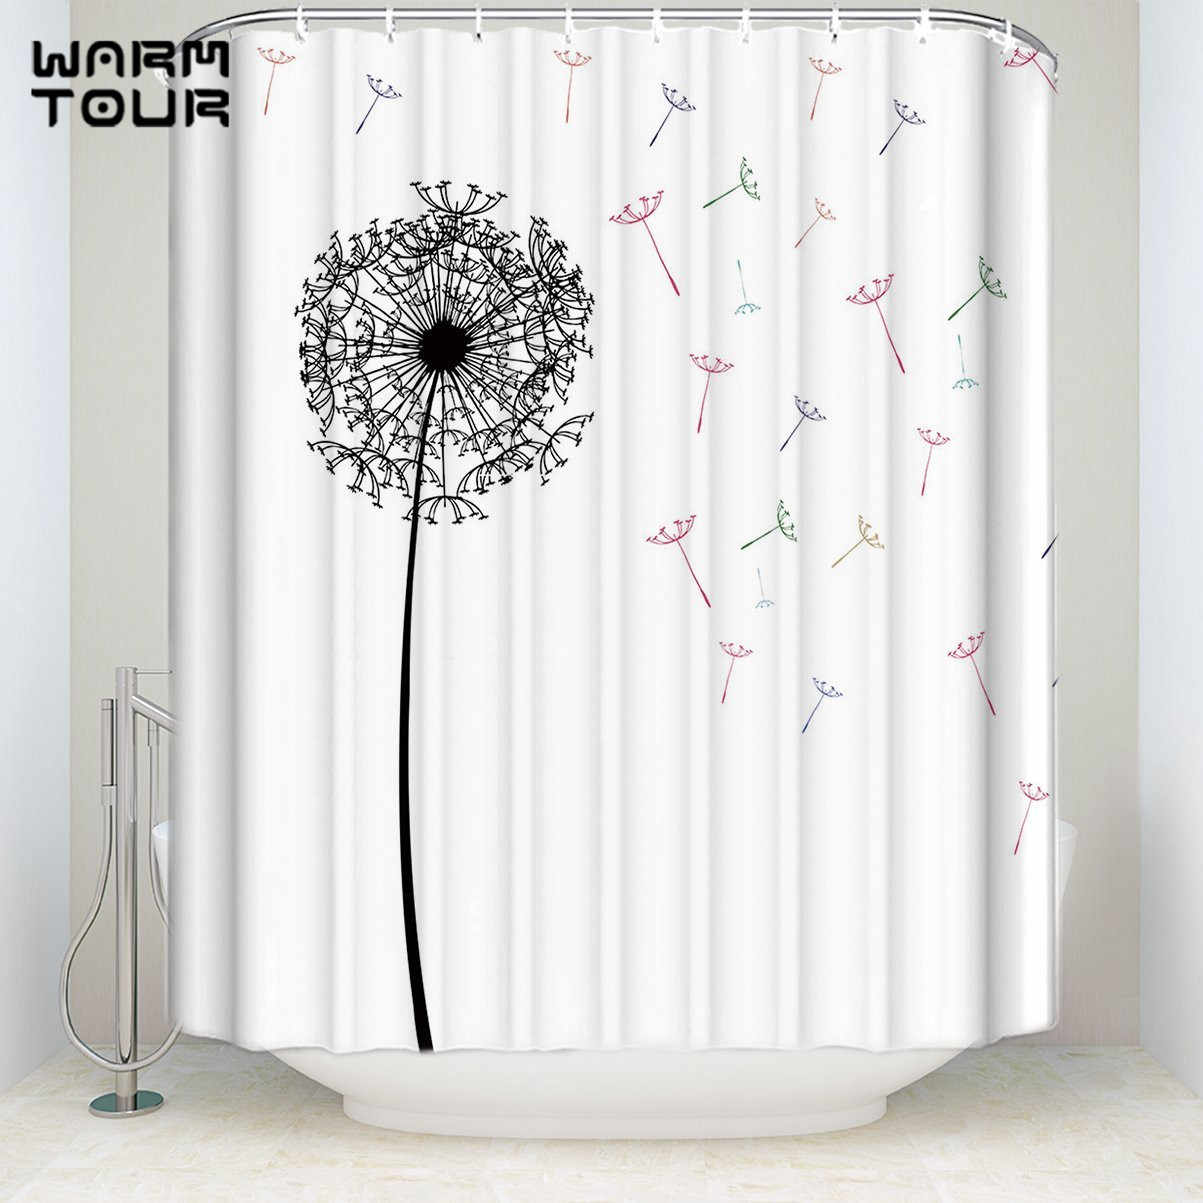 Bathroom Shower Curtain Extra Long Fabric Bath Shower Curtains Funny Dandelion White Welcome Mildew Resistant Bathroom Decor Sets With Hooks